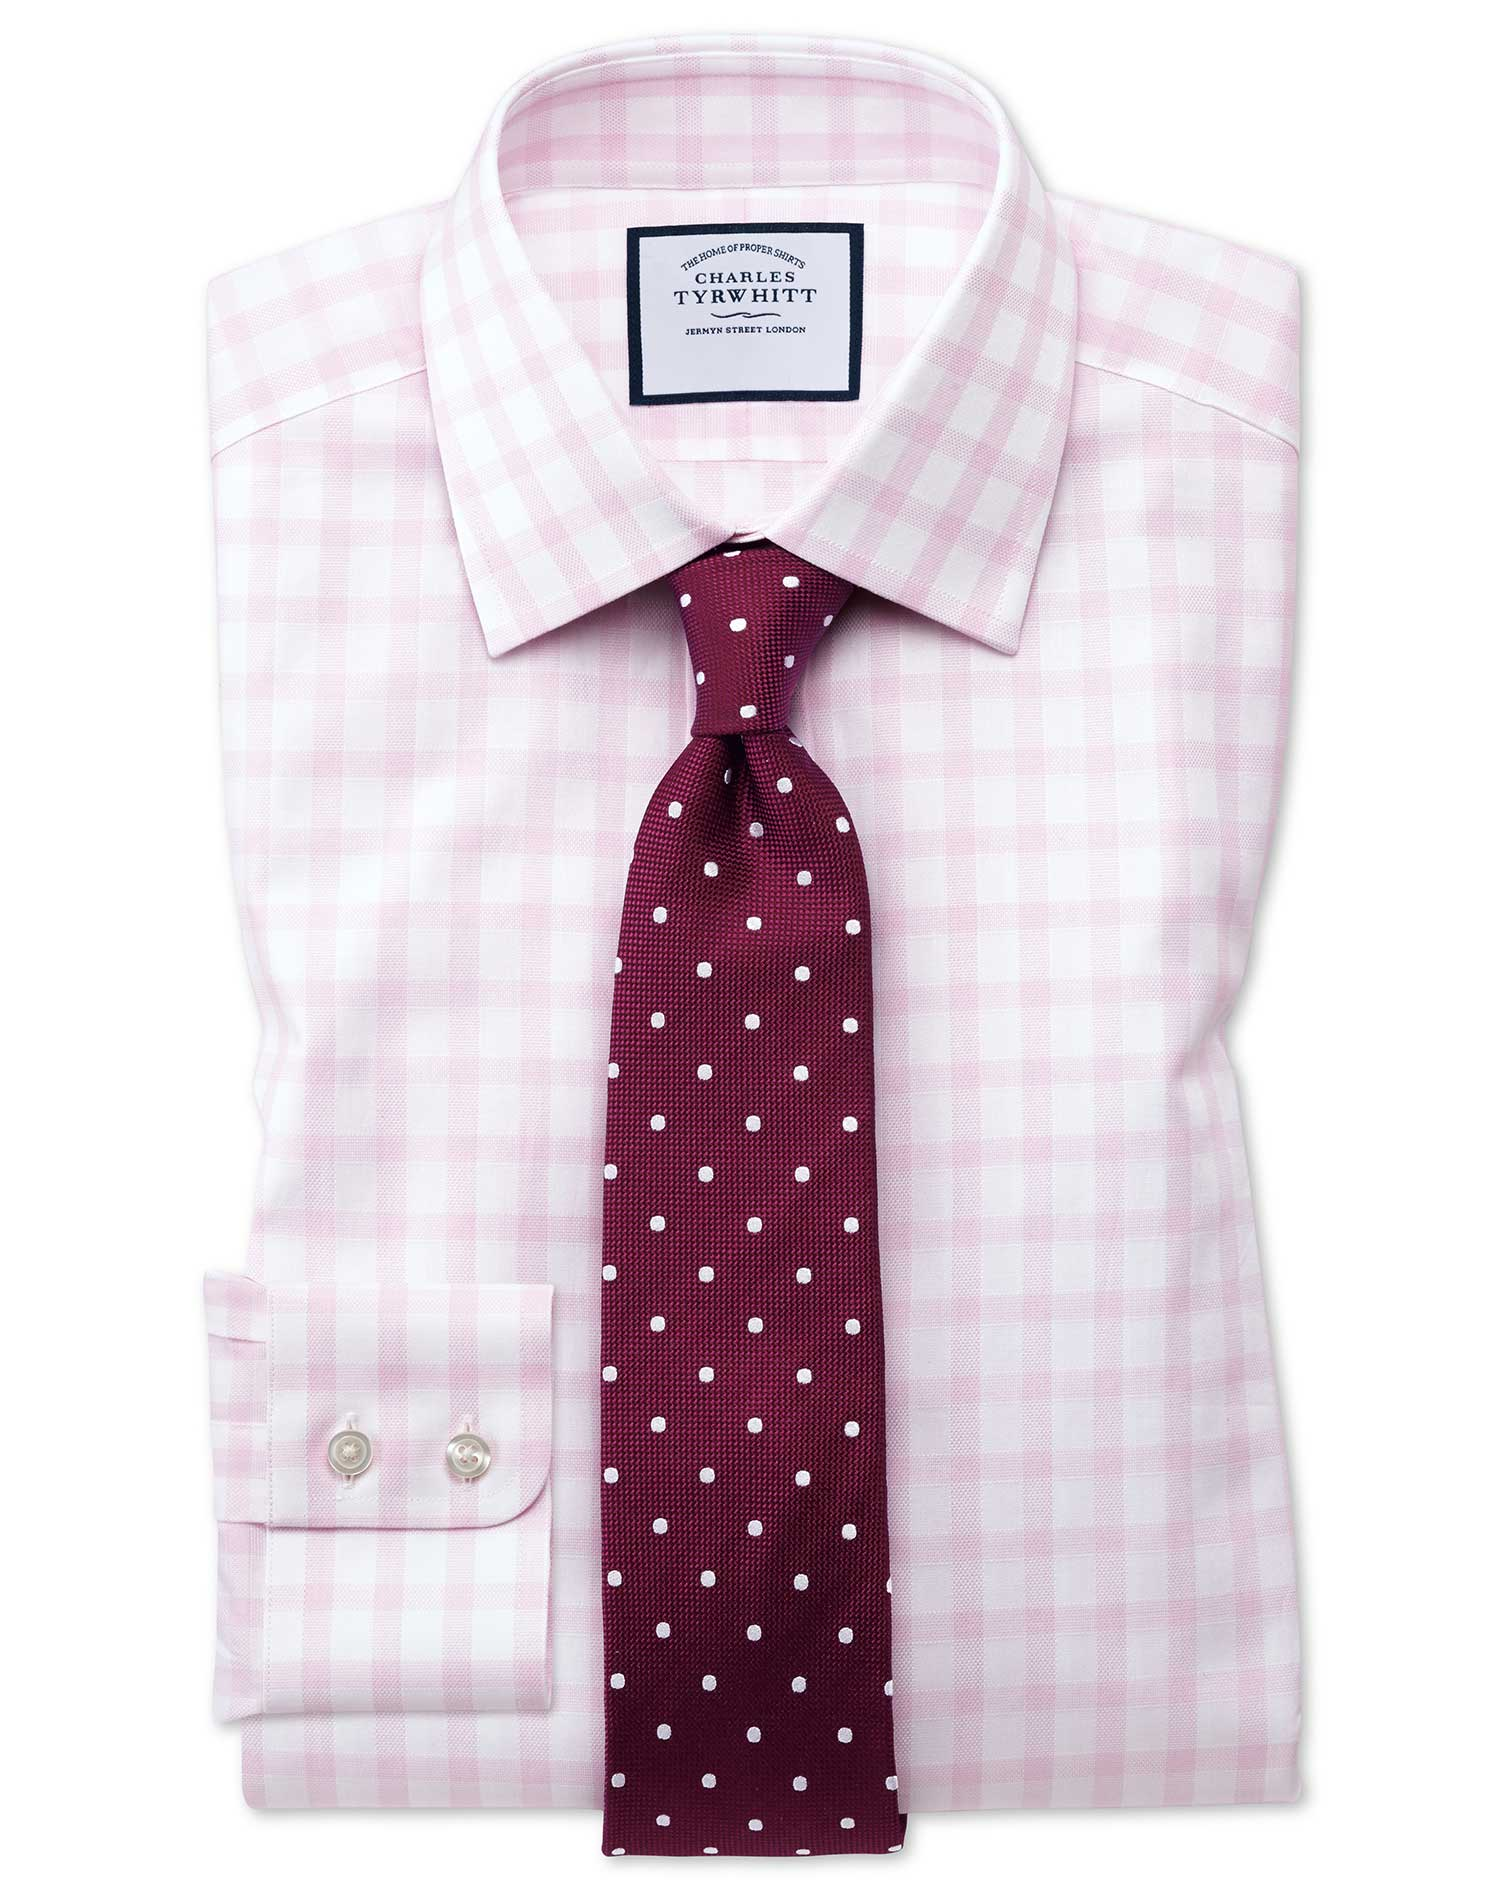 Slim Fit Windowpane Check Pink Cotton Formal Shirt Single Cuff Size 18/35 by Charles Tyrwhitt